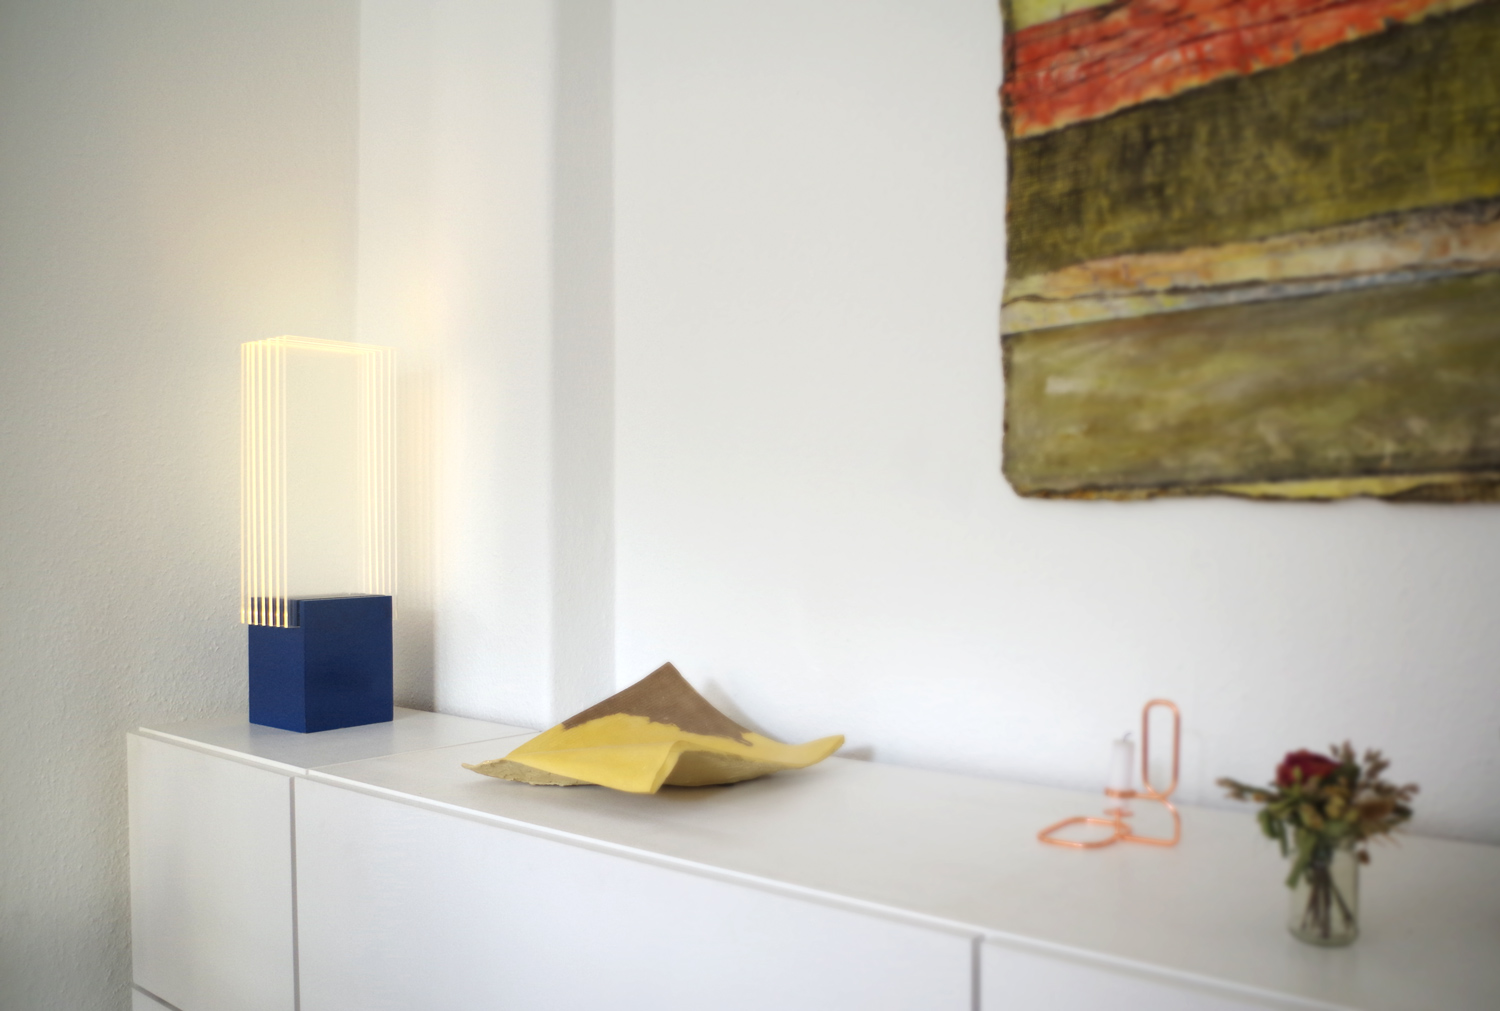 Lampe_USE_Content_04